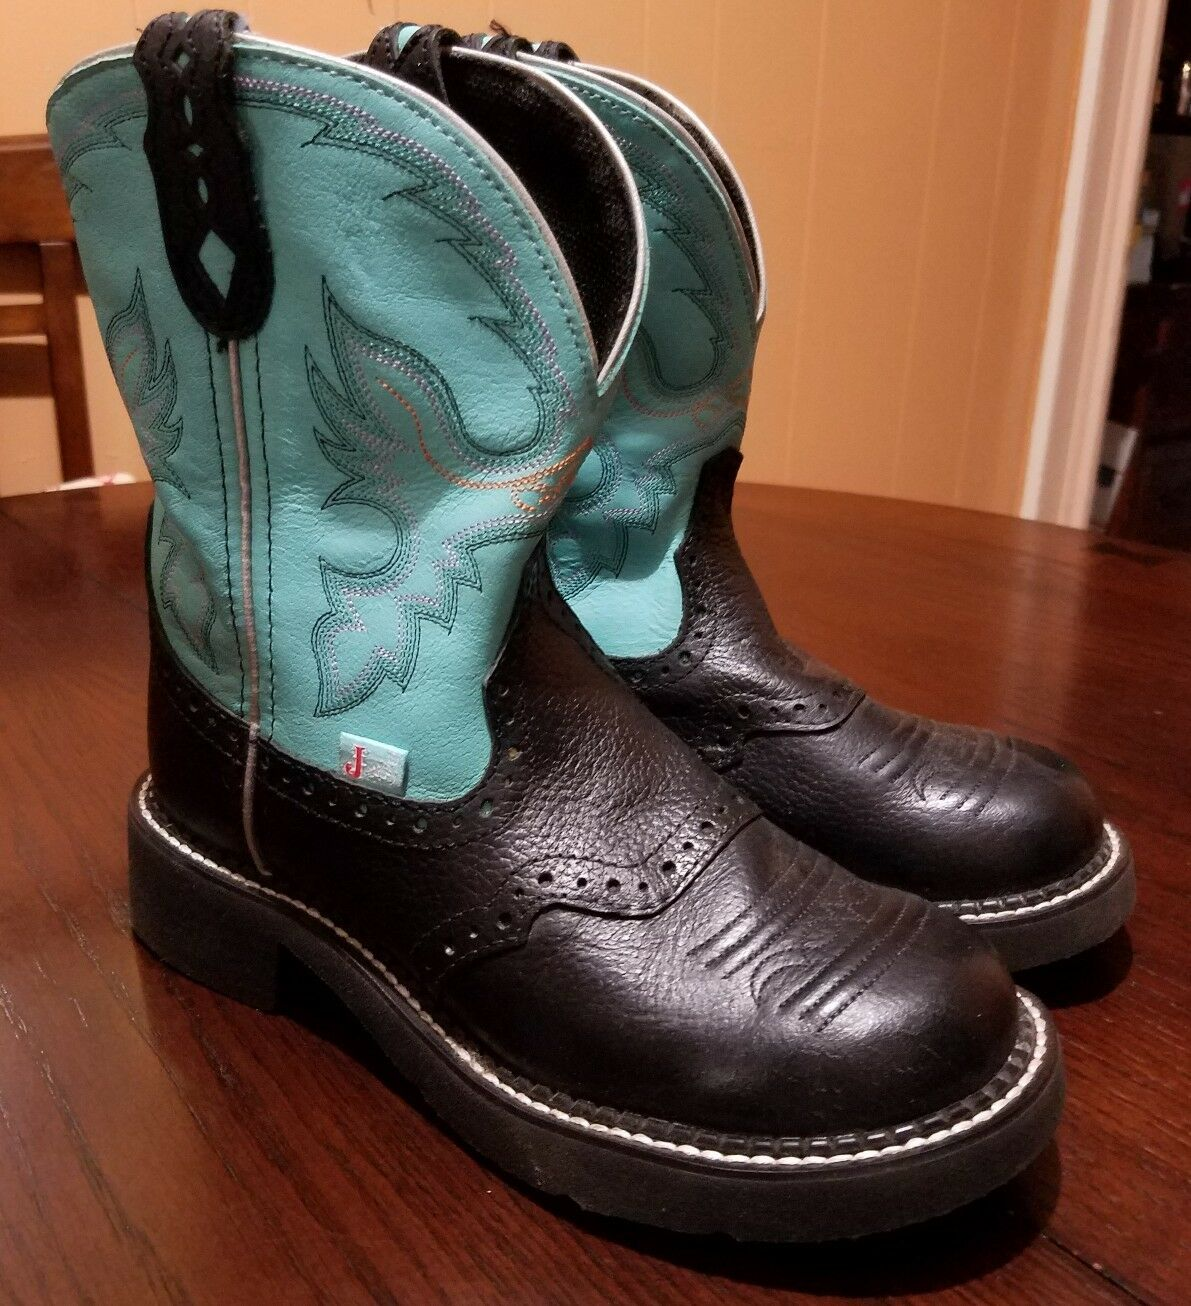 Justin Gypsy Women Black & Turquoise Leather Roper Boots Size 7 B *L9905